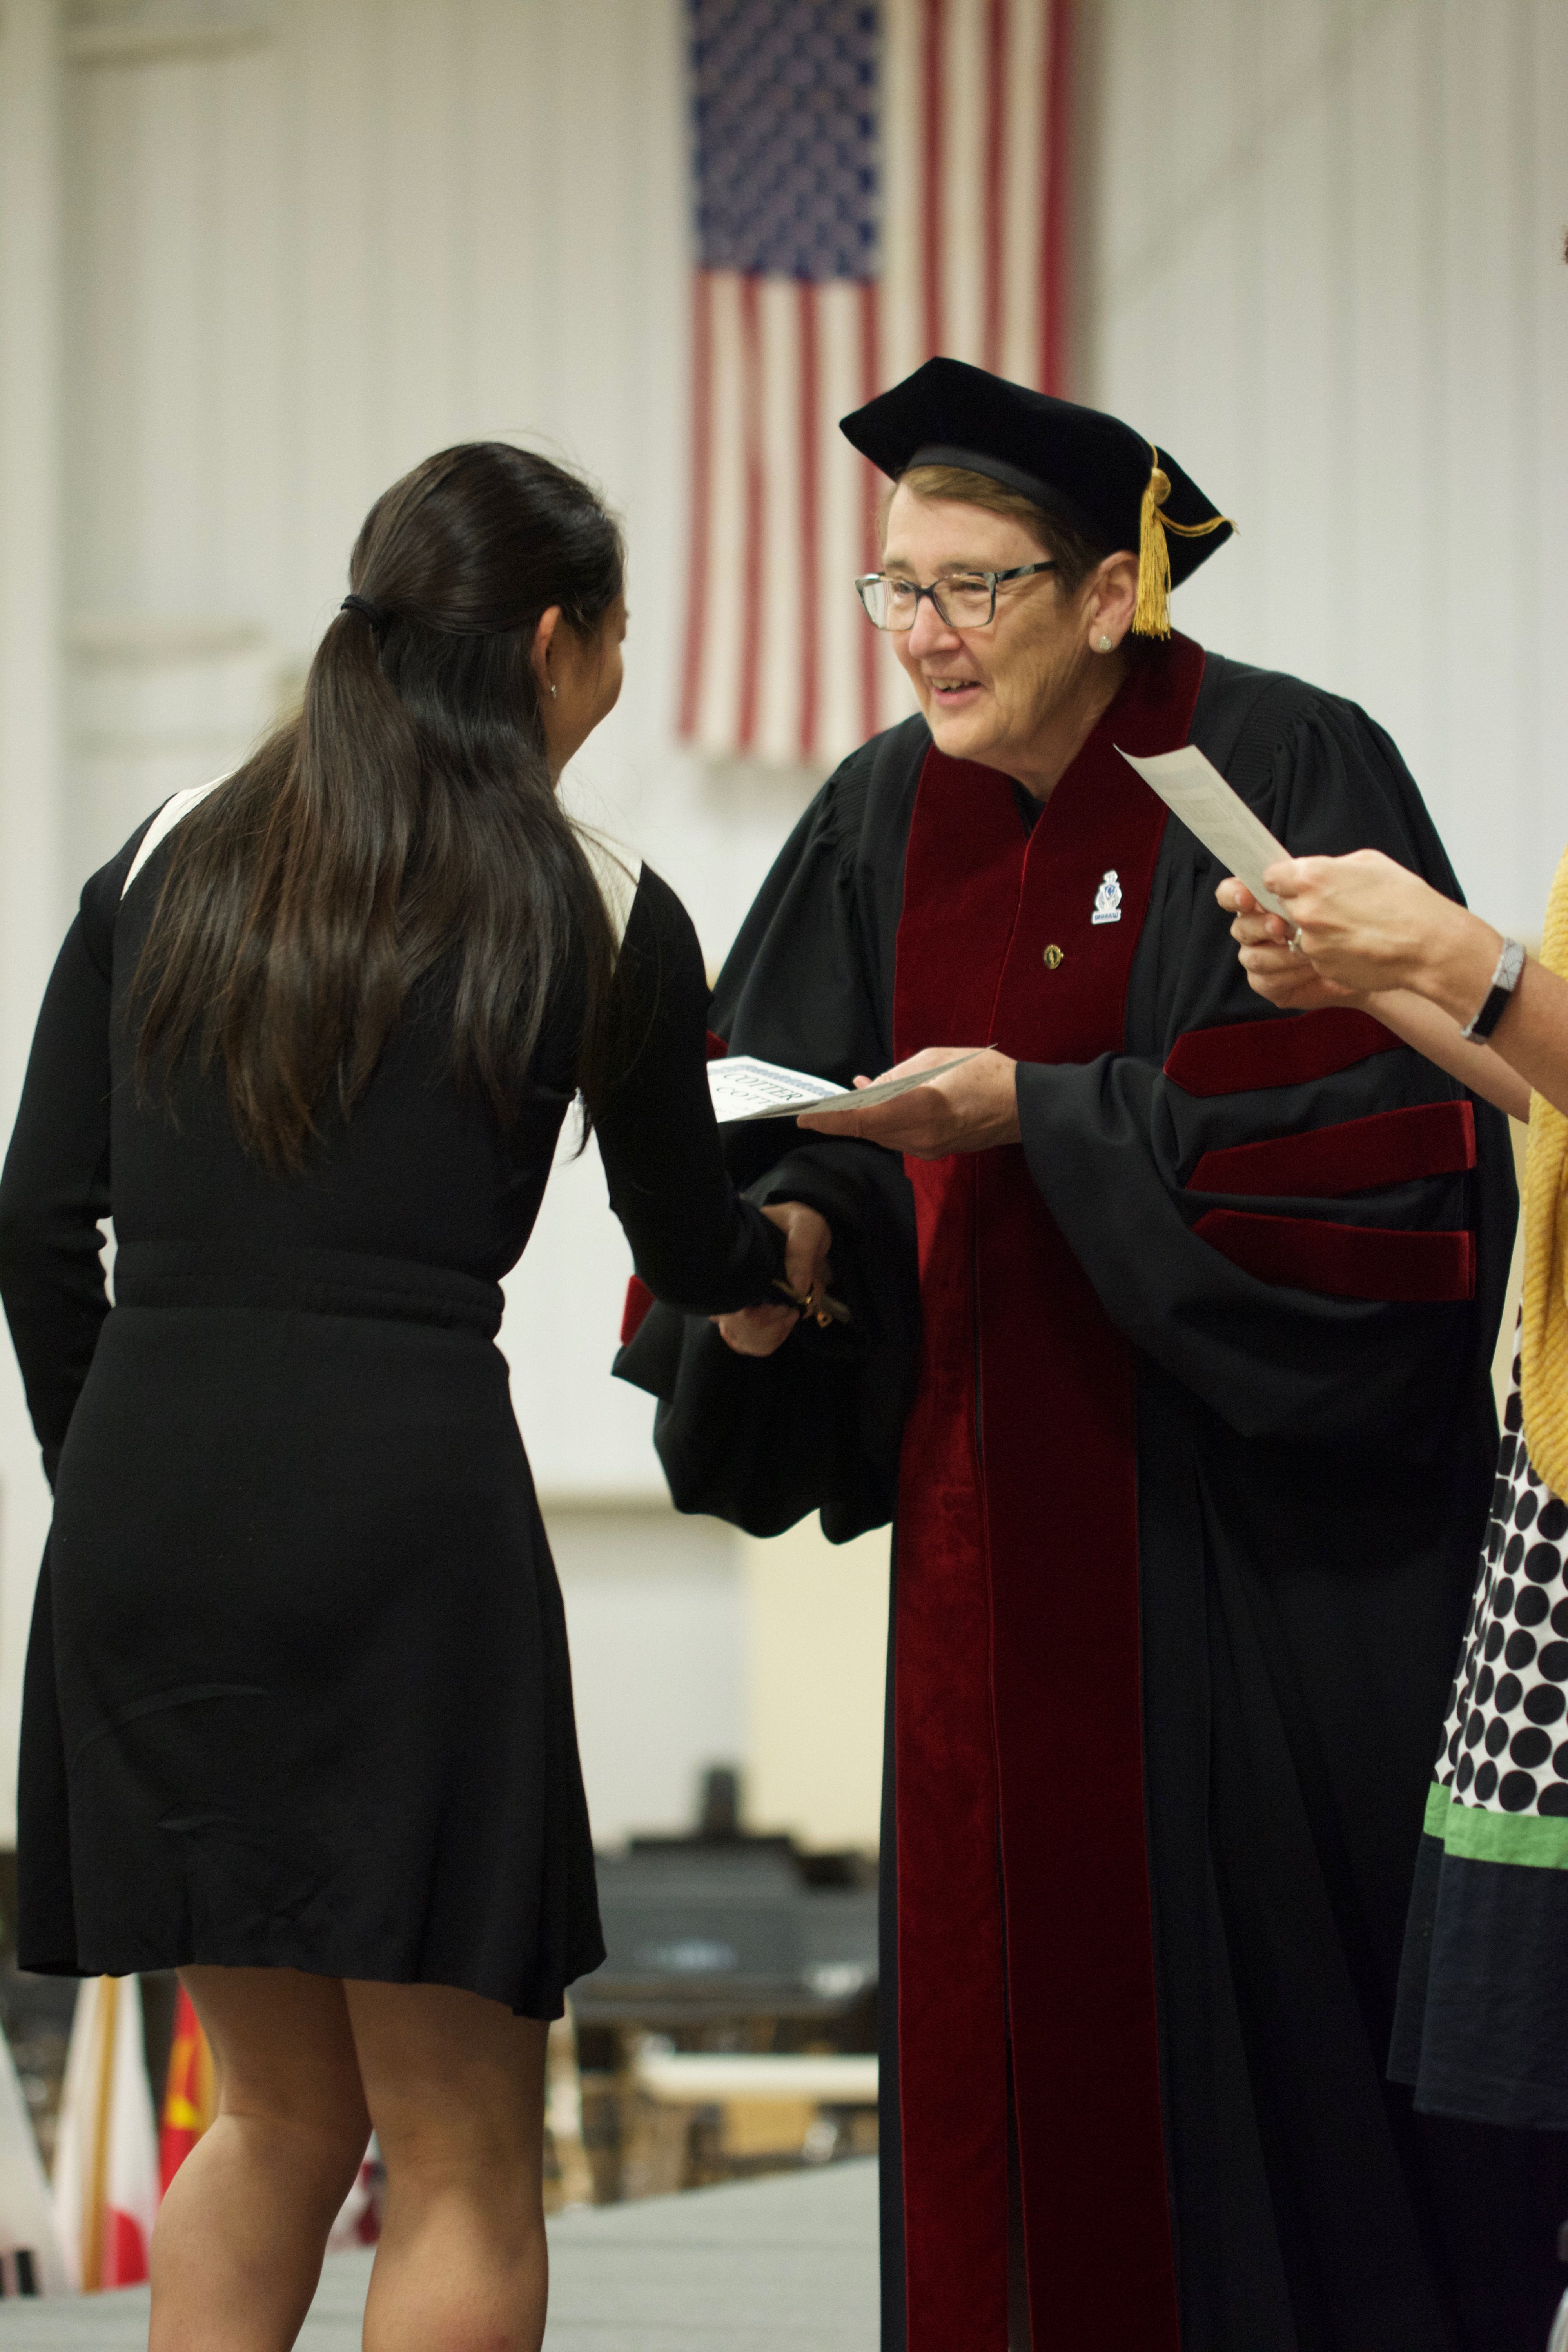 Sister Judy Honored by MISF